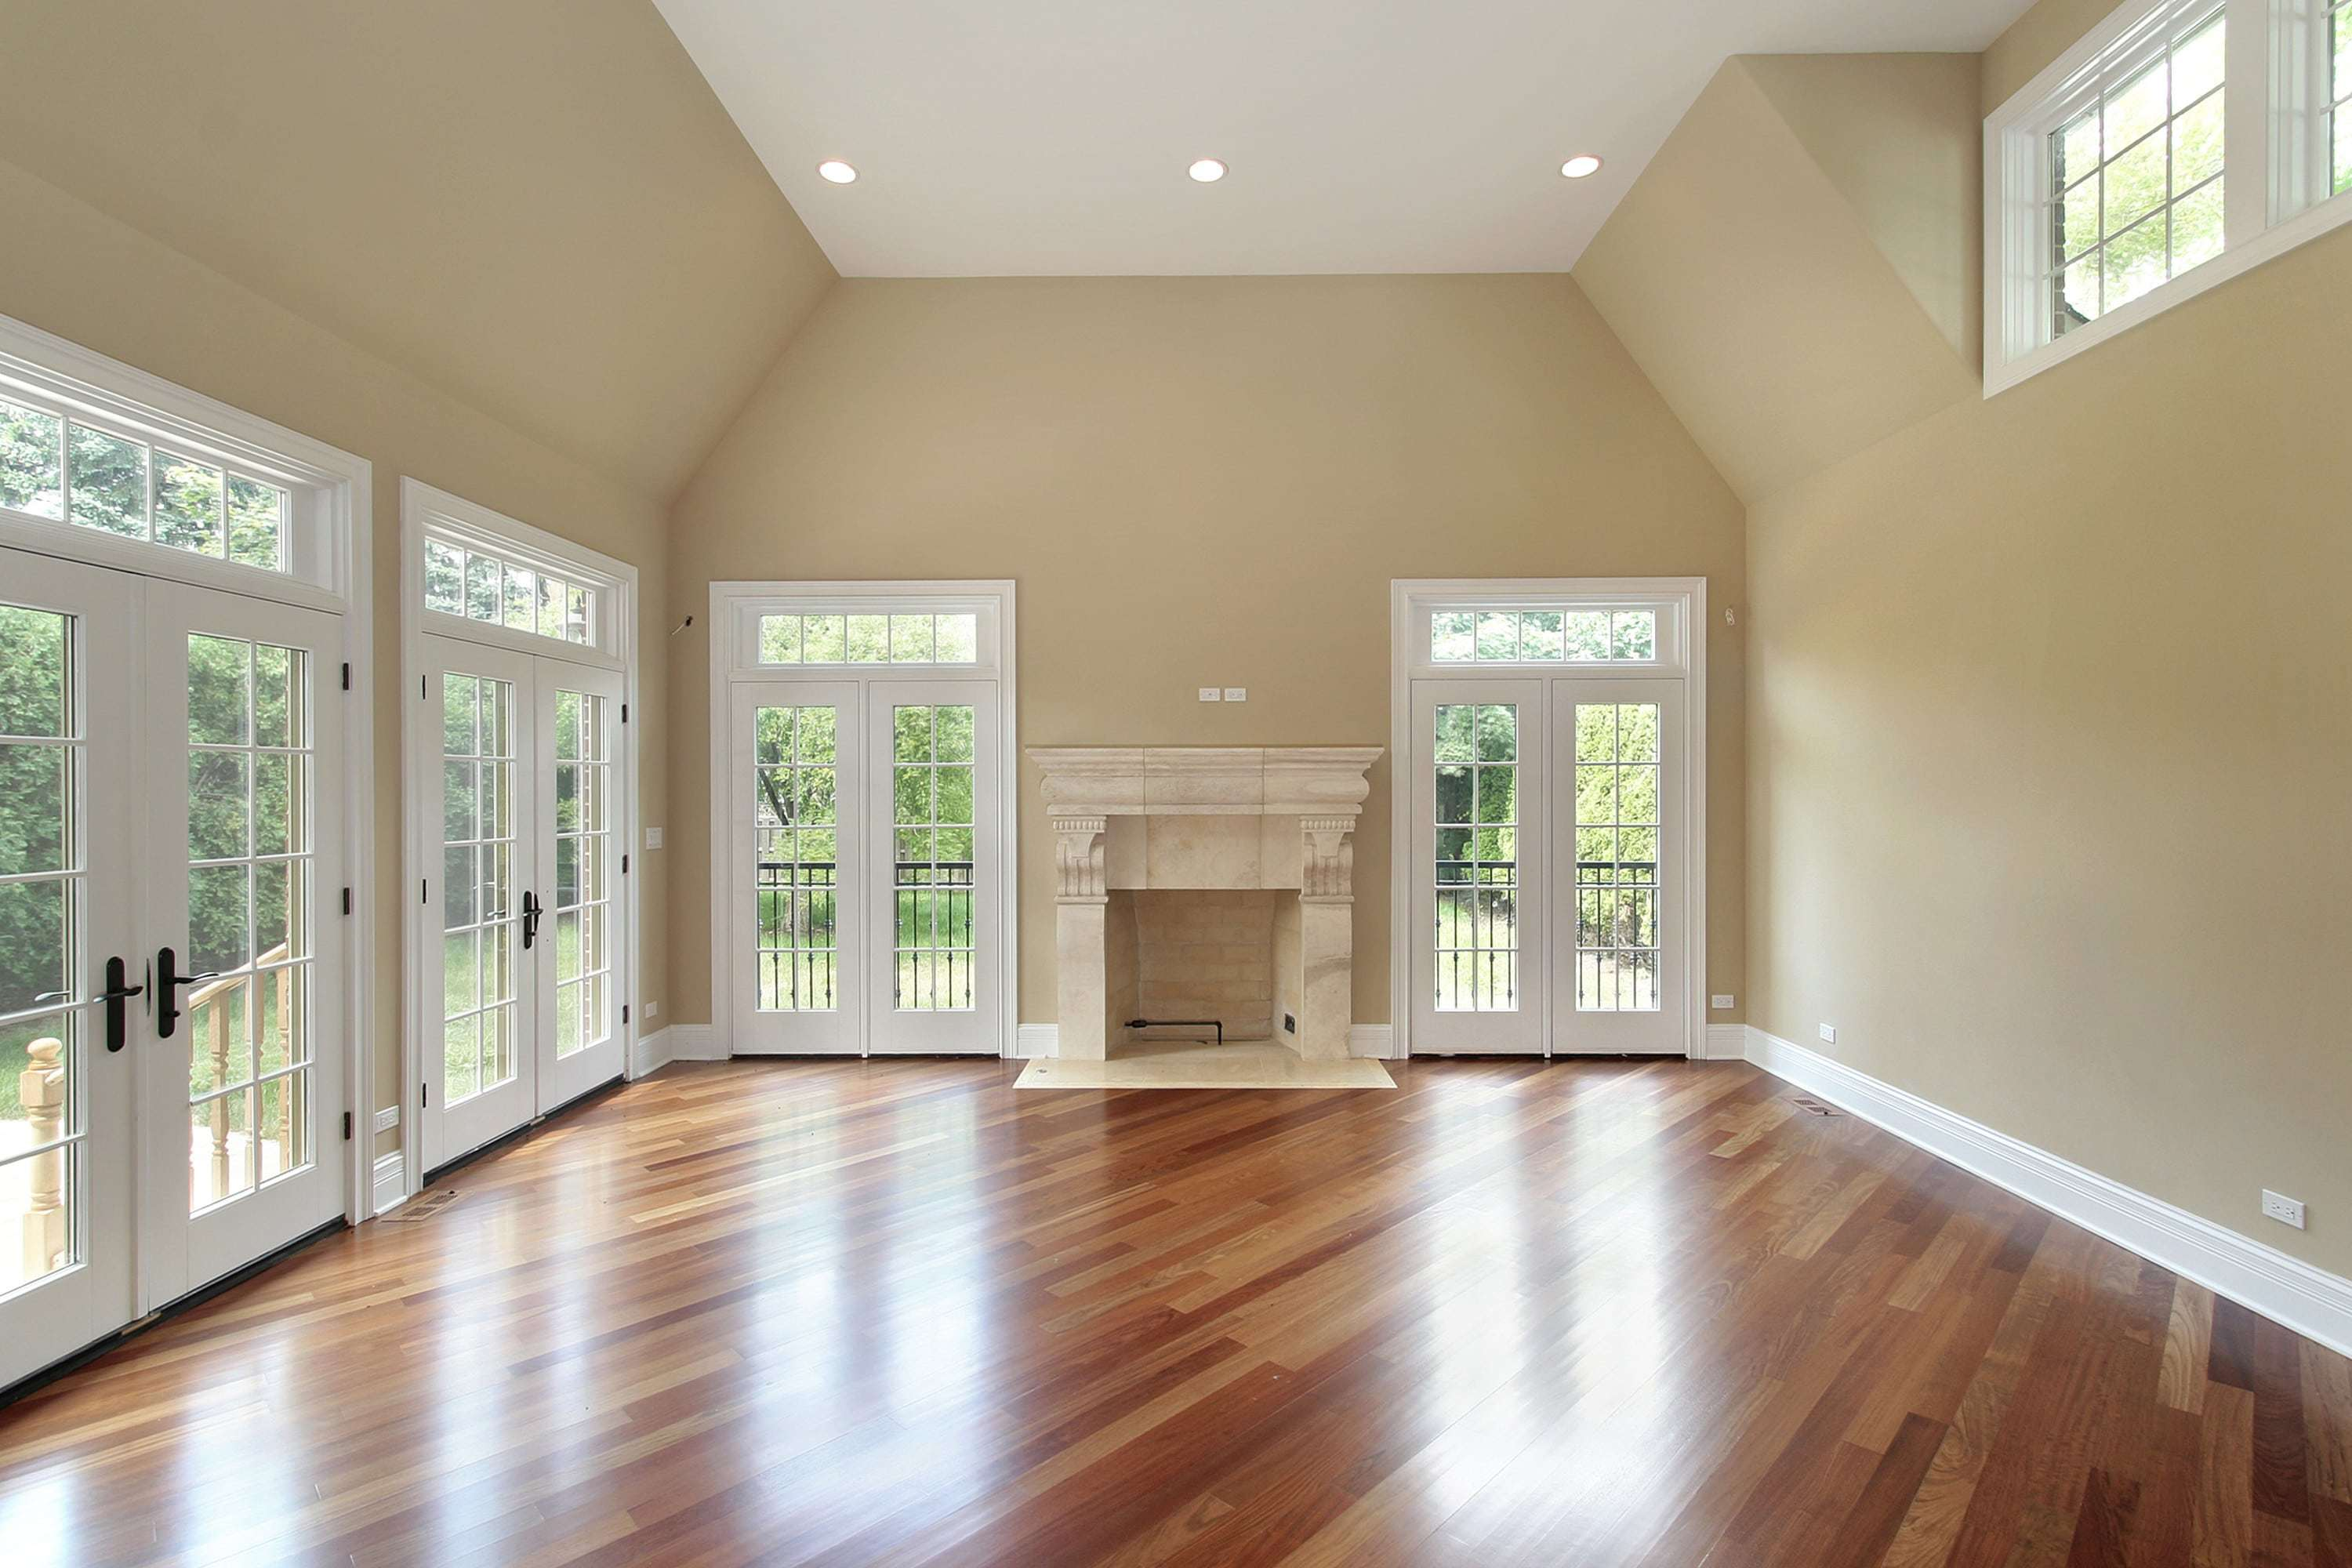 Nj family room addition facts bergen county contractors for Room addition